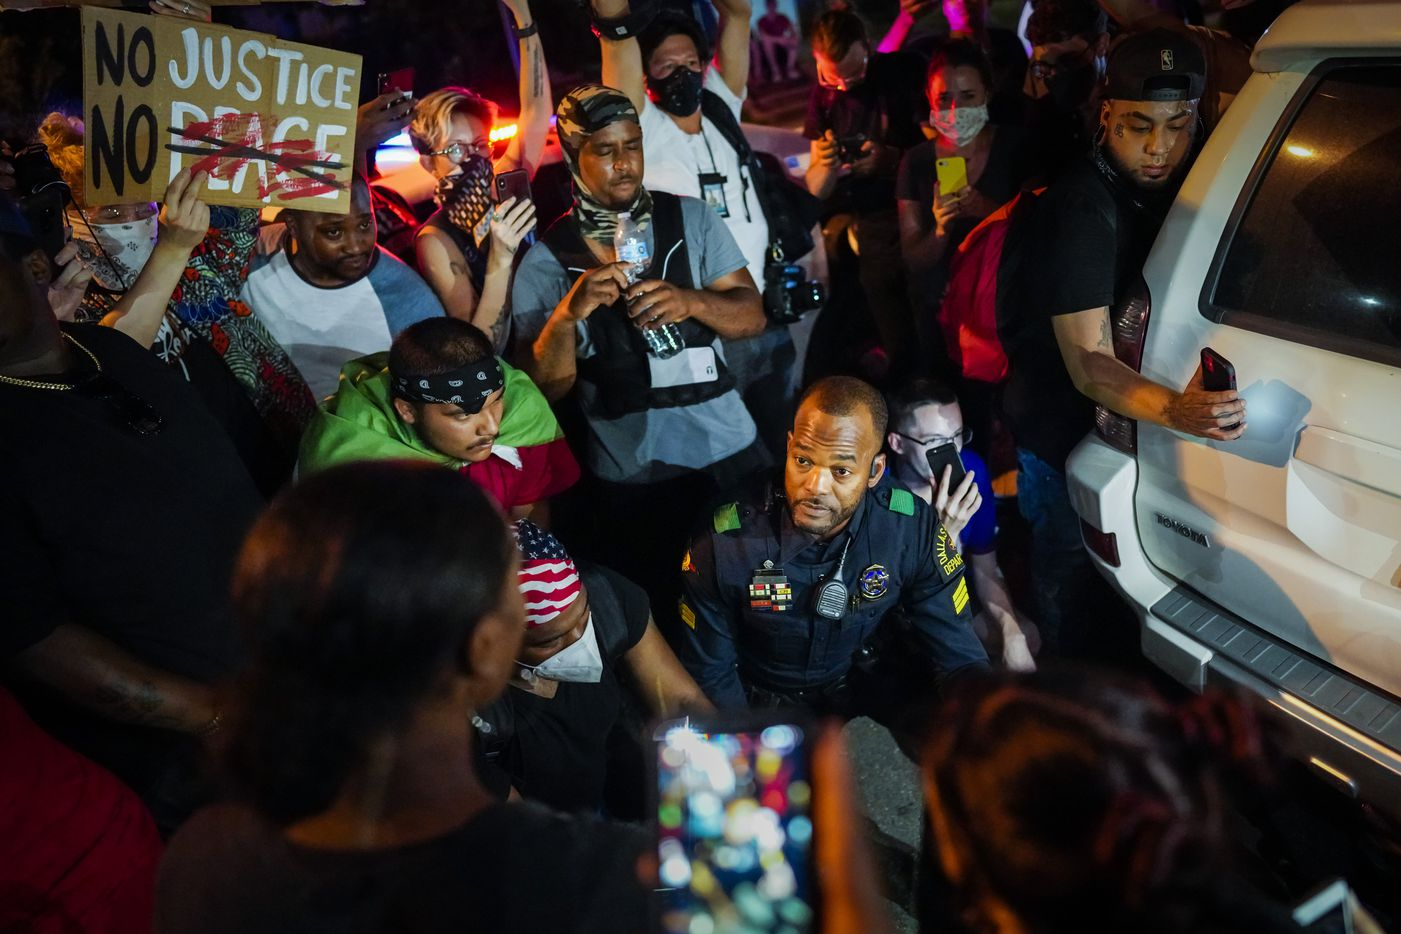 A Dallas police officer stops and gets our of his car to talk and take photos with a group of demonstrators gathered at Lake Cliff Park as protests continue after the death of George Floyd on Tuesday, June 2, 2020, in Dallas. Because of the city imposed 7:00 p.m. curfew, the group moved from Dallas City Hall to outside the curfew zone in Oak Cliff.